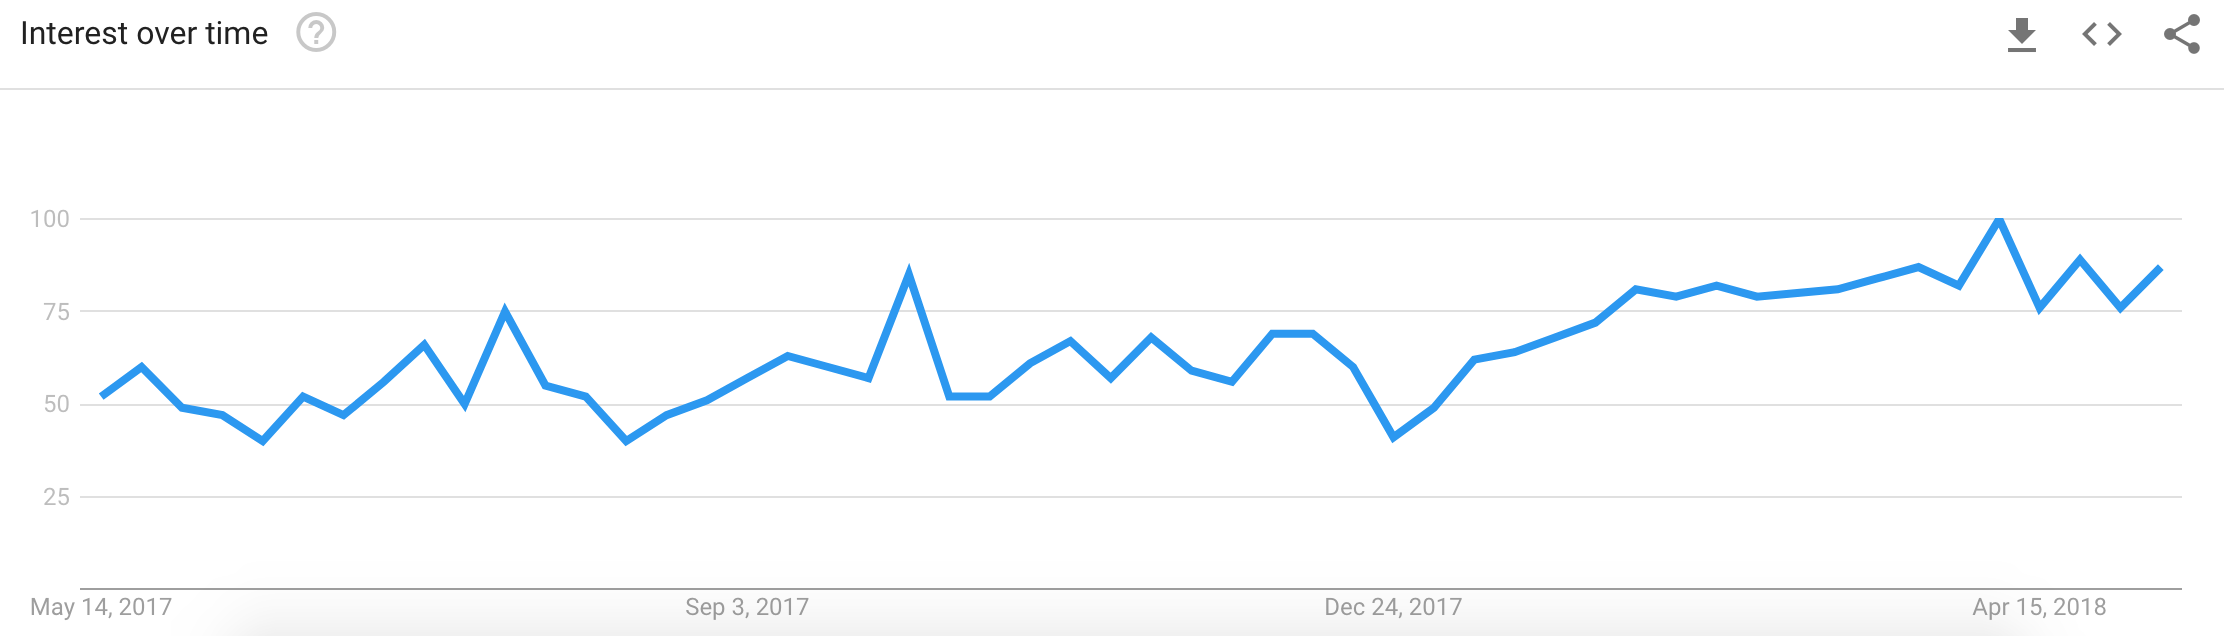 Popularity of PWAs according to Google Trends